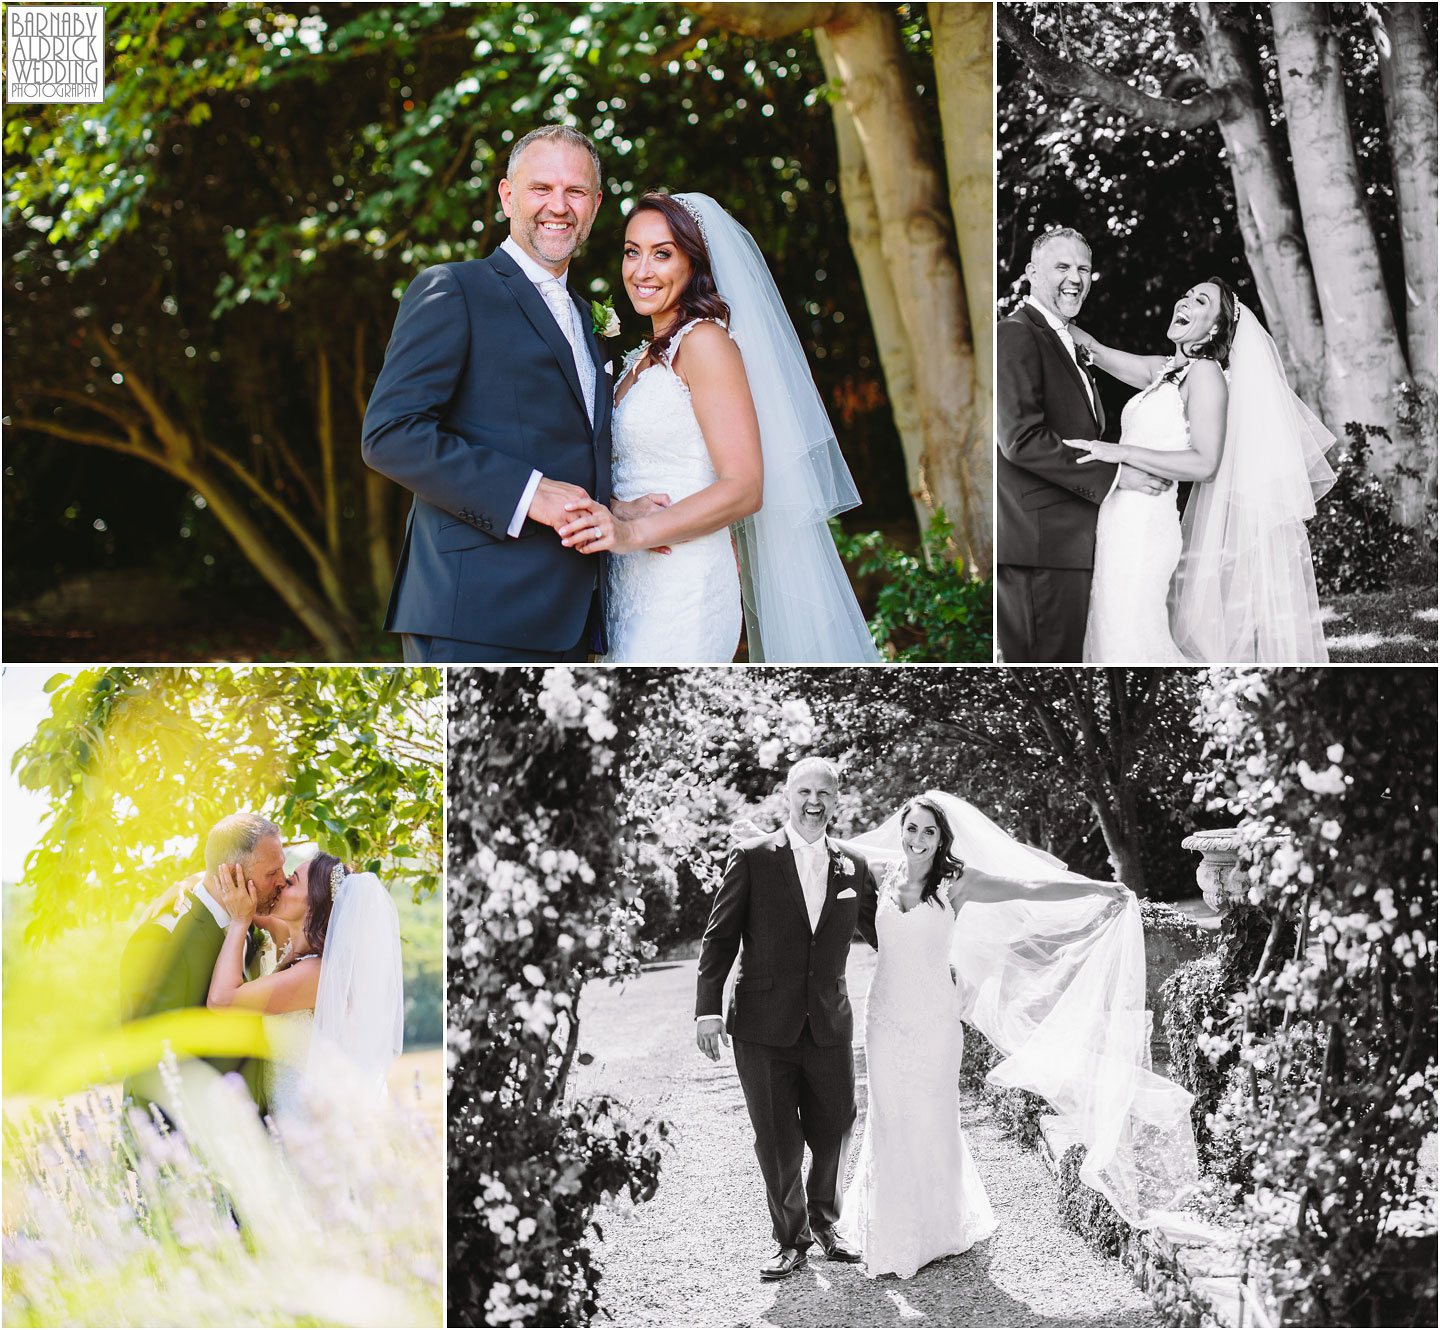 Wedding photography portraits at Wood Hall near Wetherby